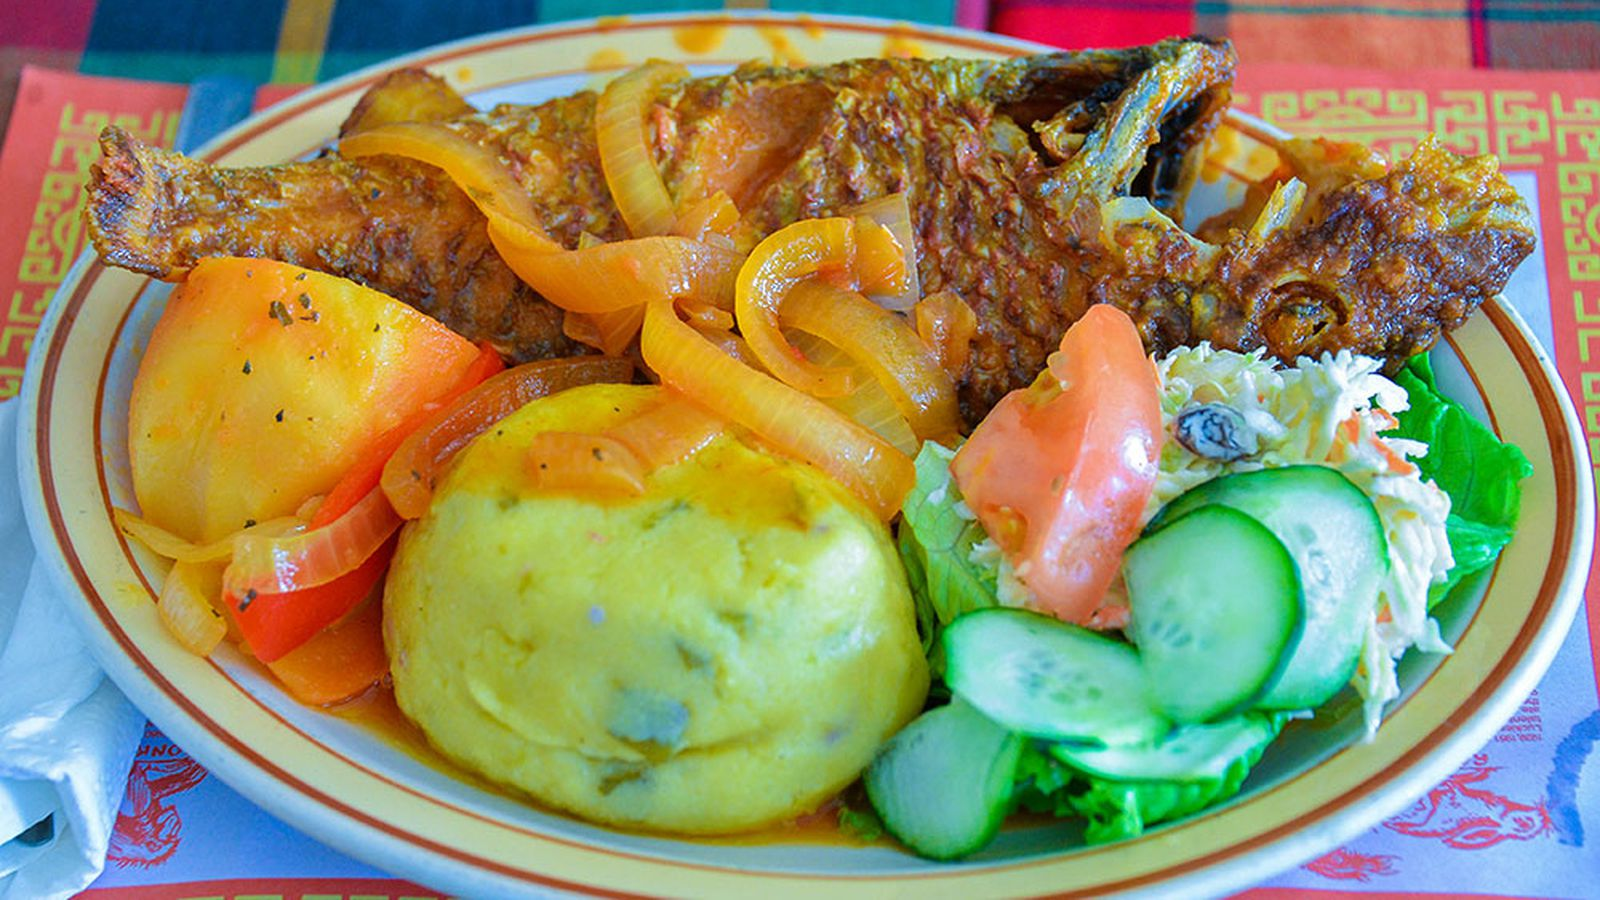 What Is The National Dish Of The Virgin Islands